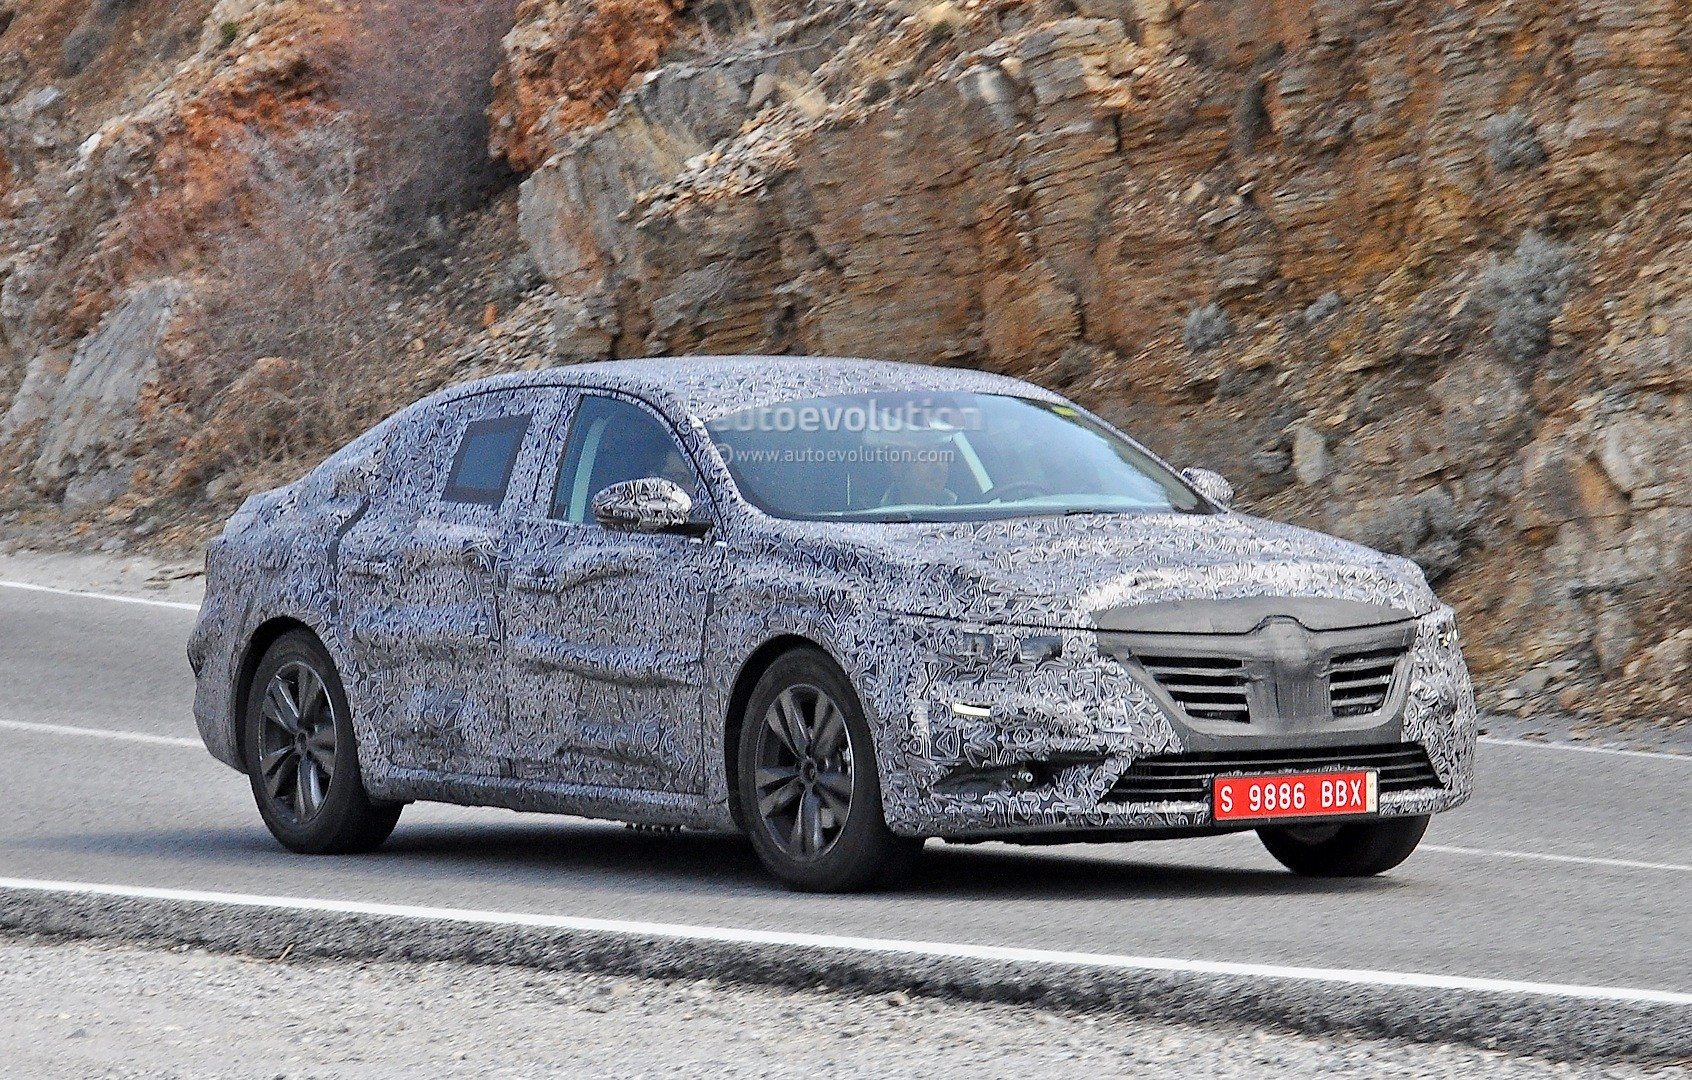 spyshots all new renault laguna interior spied for the first time autoevolution. Black Bedroom Furniture Sets. Home Design Ideas